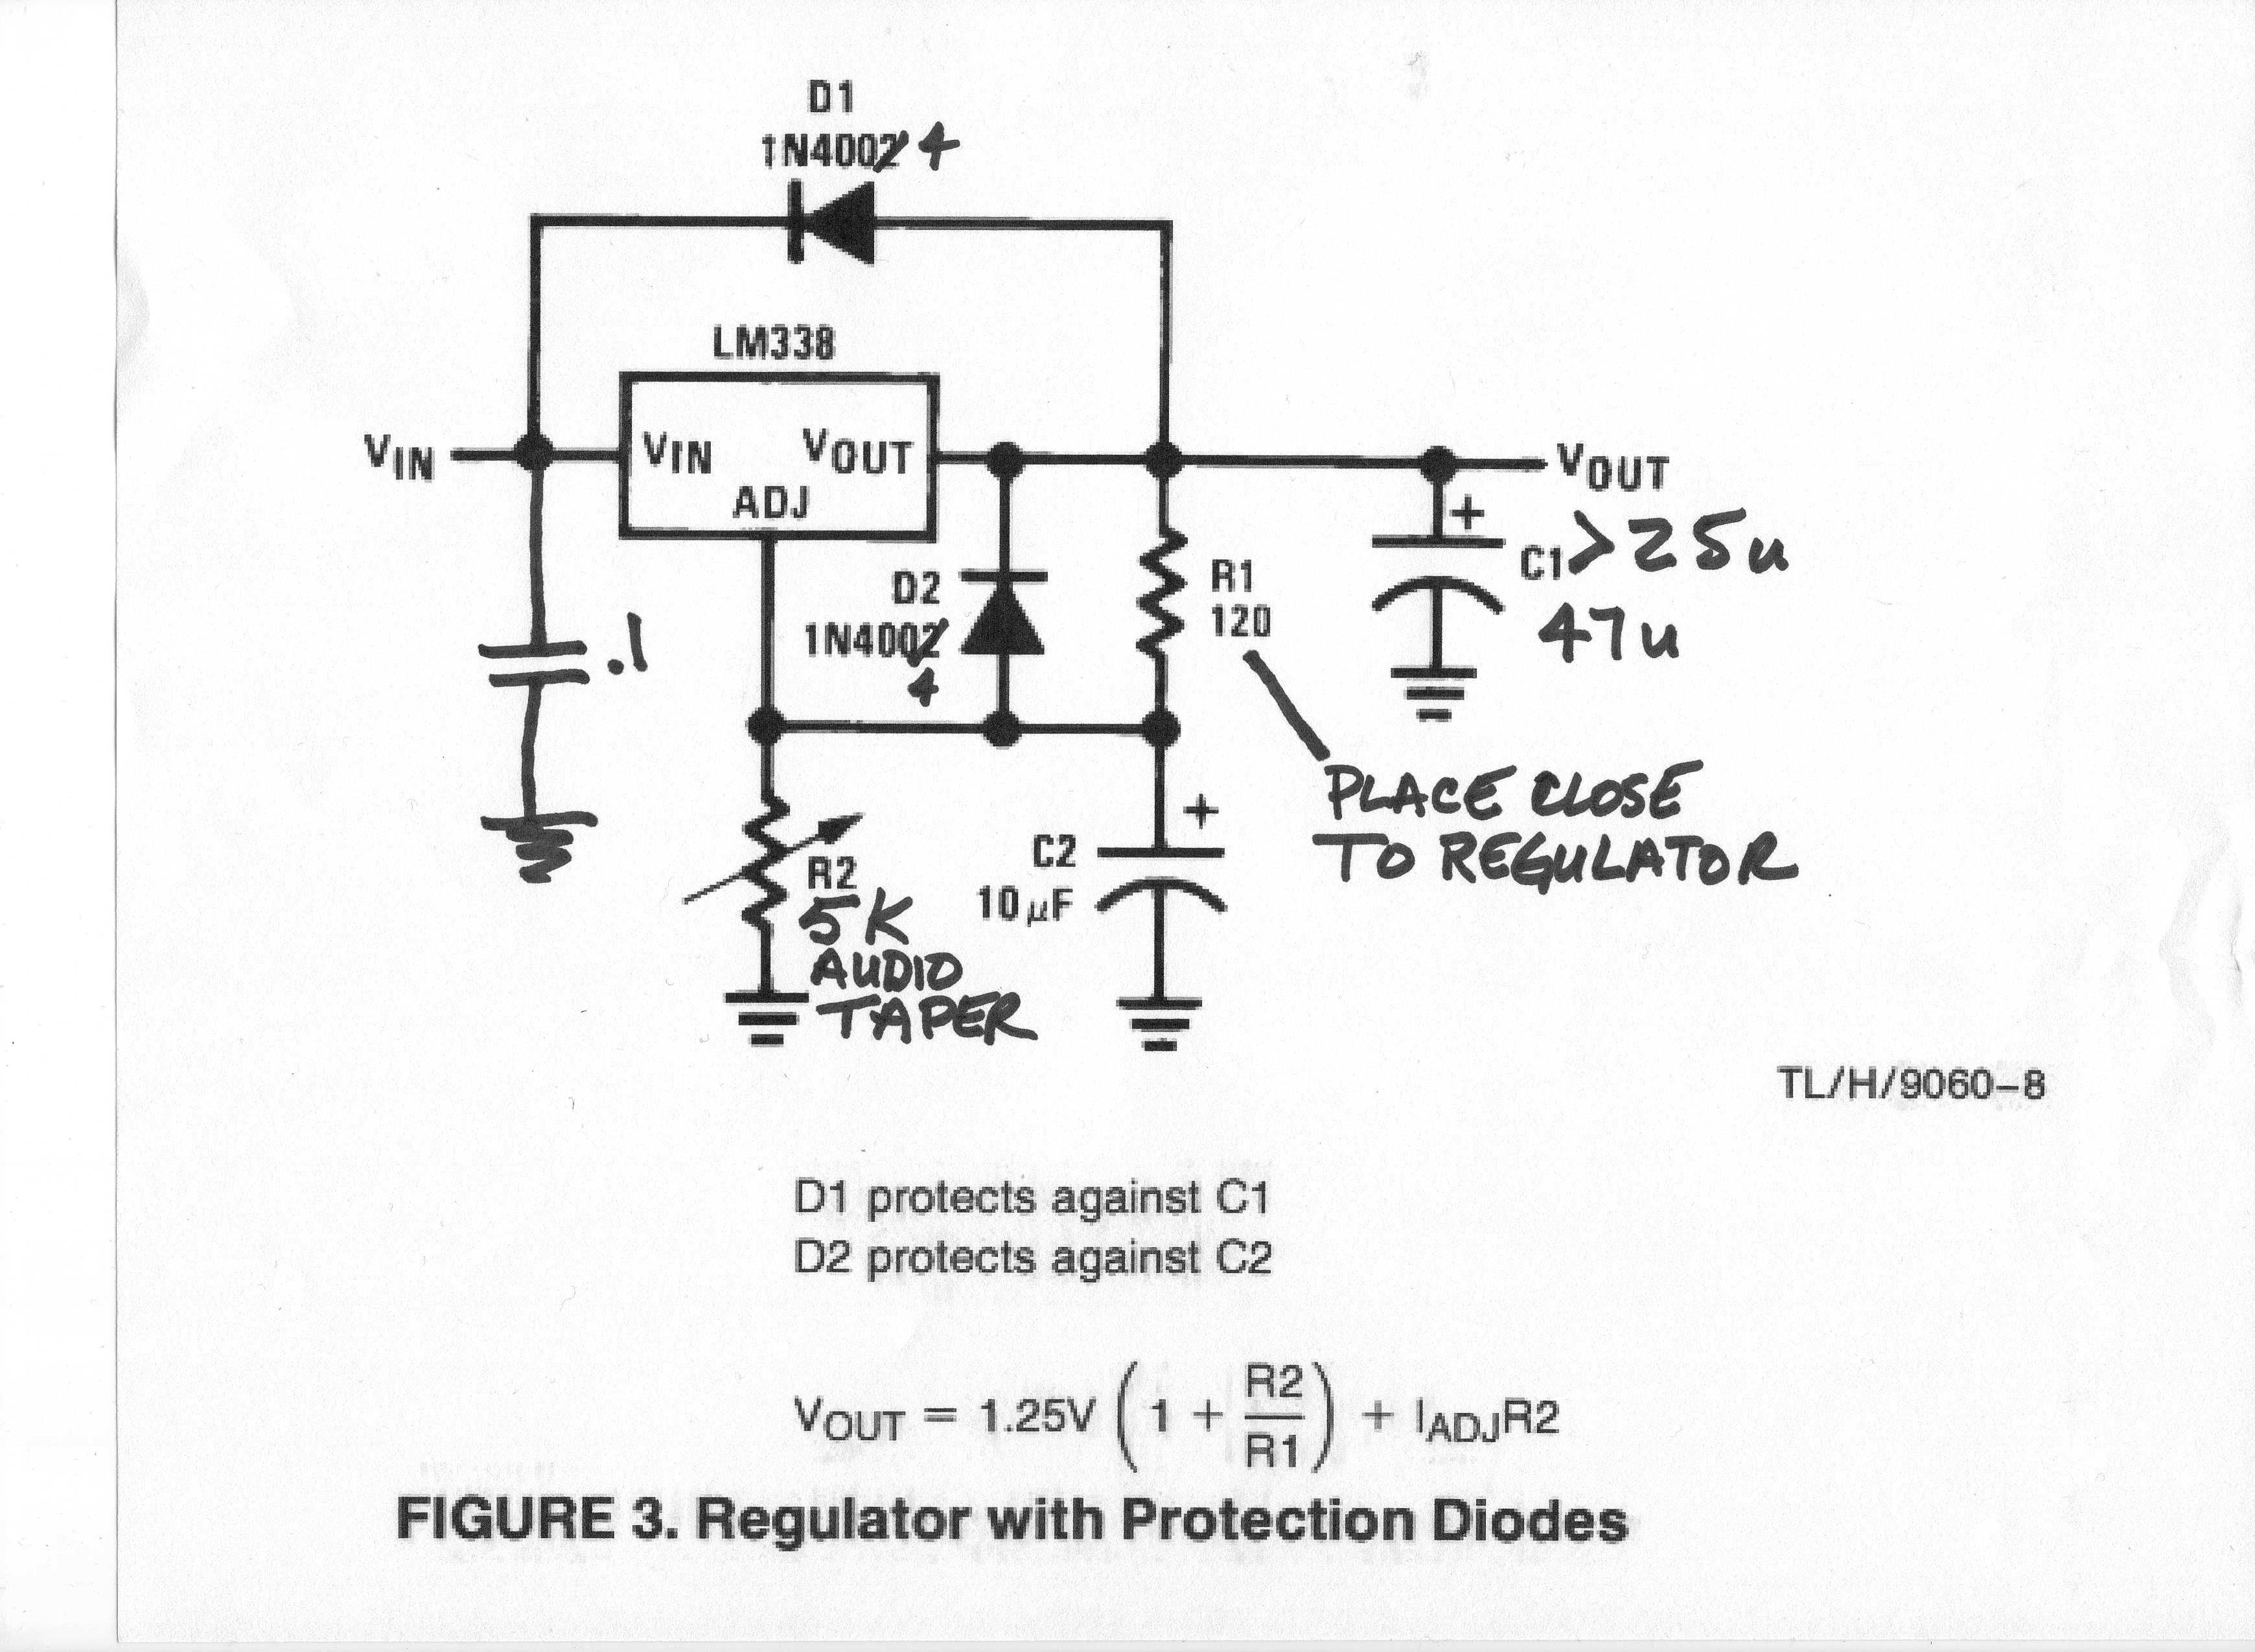 Synchronous Generators furthermore Relay Driver Circuit Using Uln2003 likewise Lm338ps as well Lm350 Current Limiter besides 171866. on voltage limiter circuit diagram